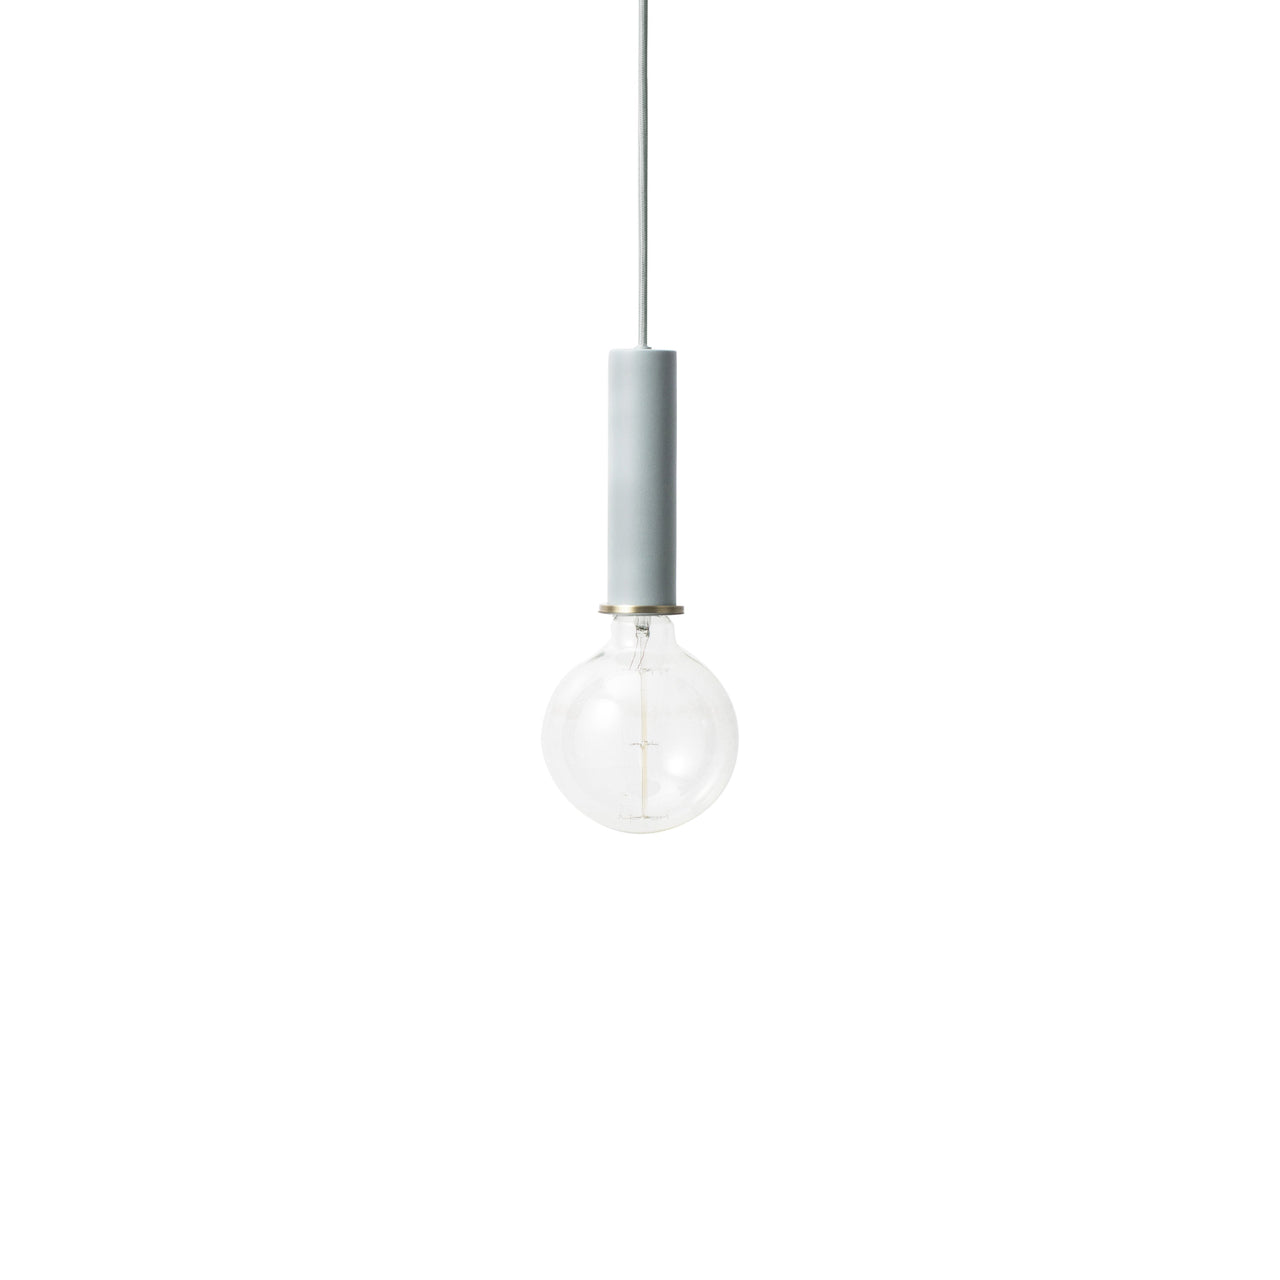 Collect Lighting: Pendant + High + Dusty Blue